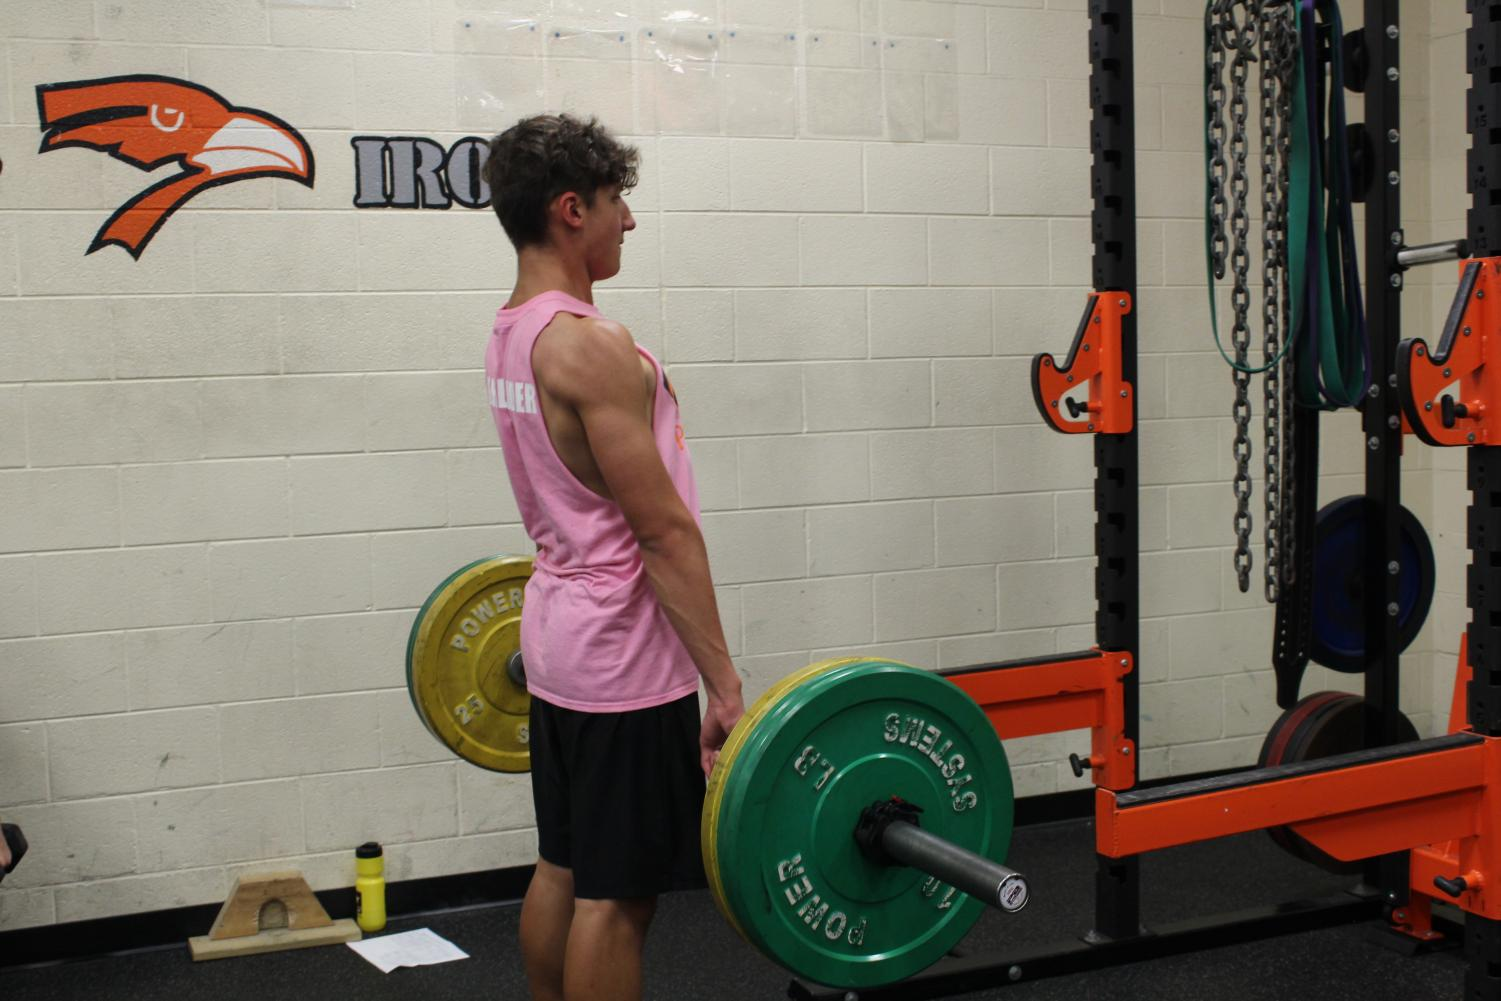 Junior+Cody+Cundell+in+weights+as+he+is+doing+deadlift+with+the+rest+of+his+class.